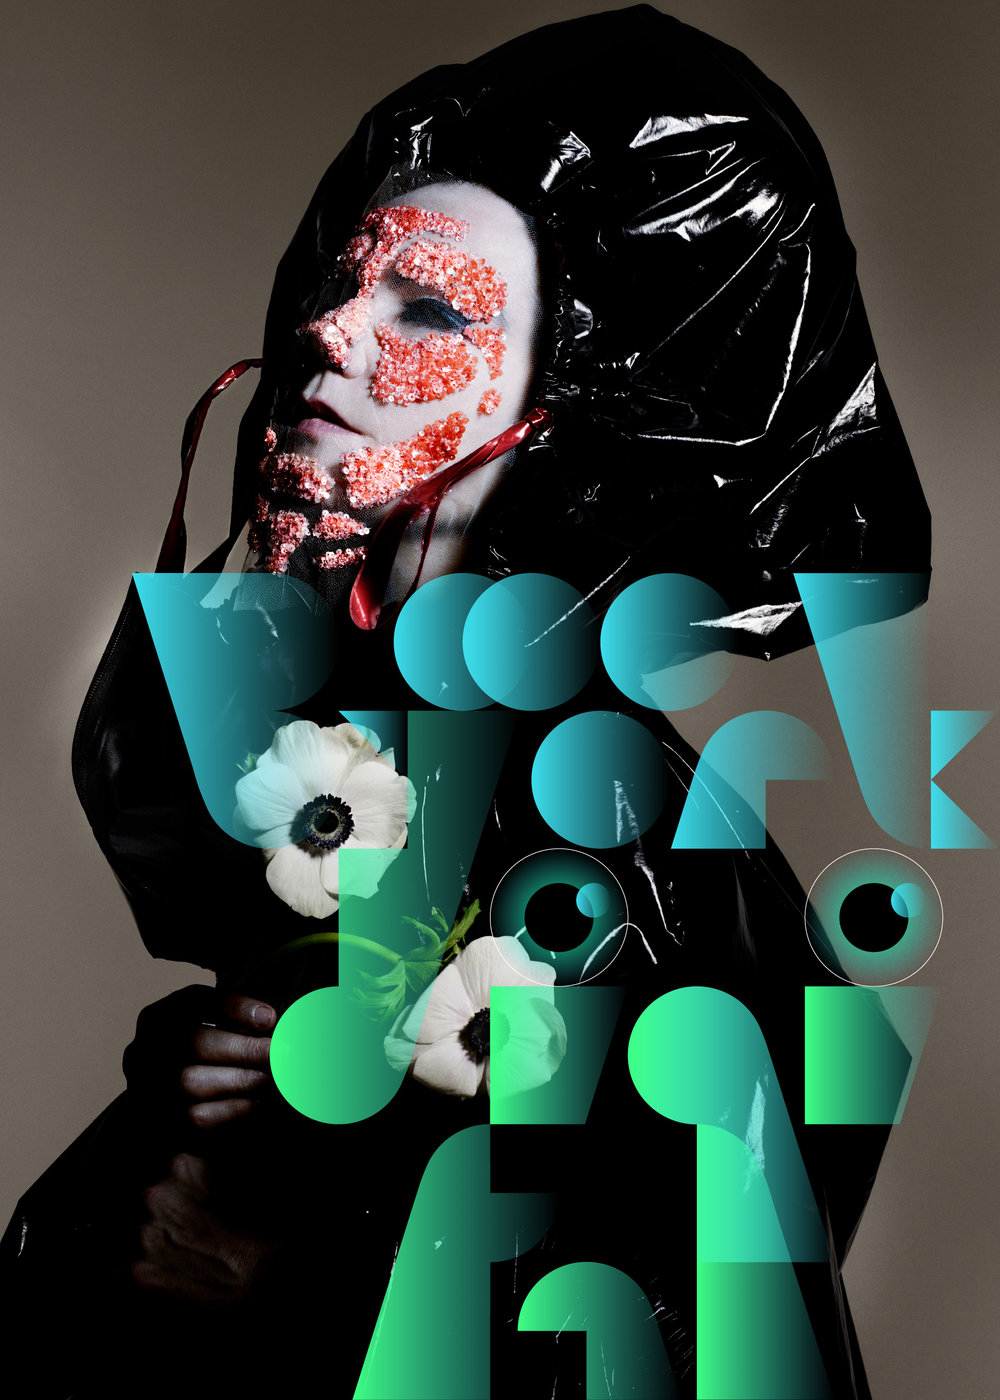 bjc3b6rkdigitalposter-photo-by-nick-knight_typography-by-mmparis.jpg